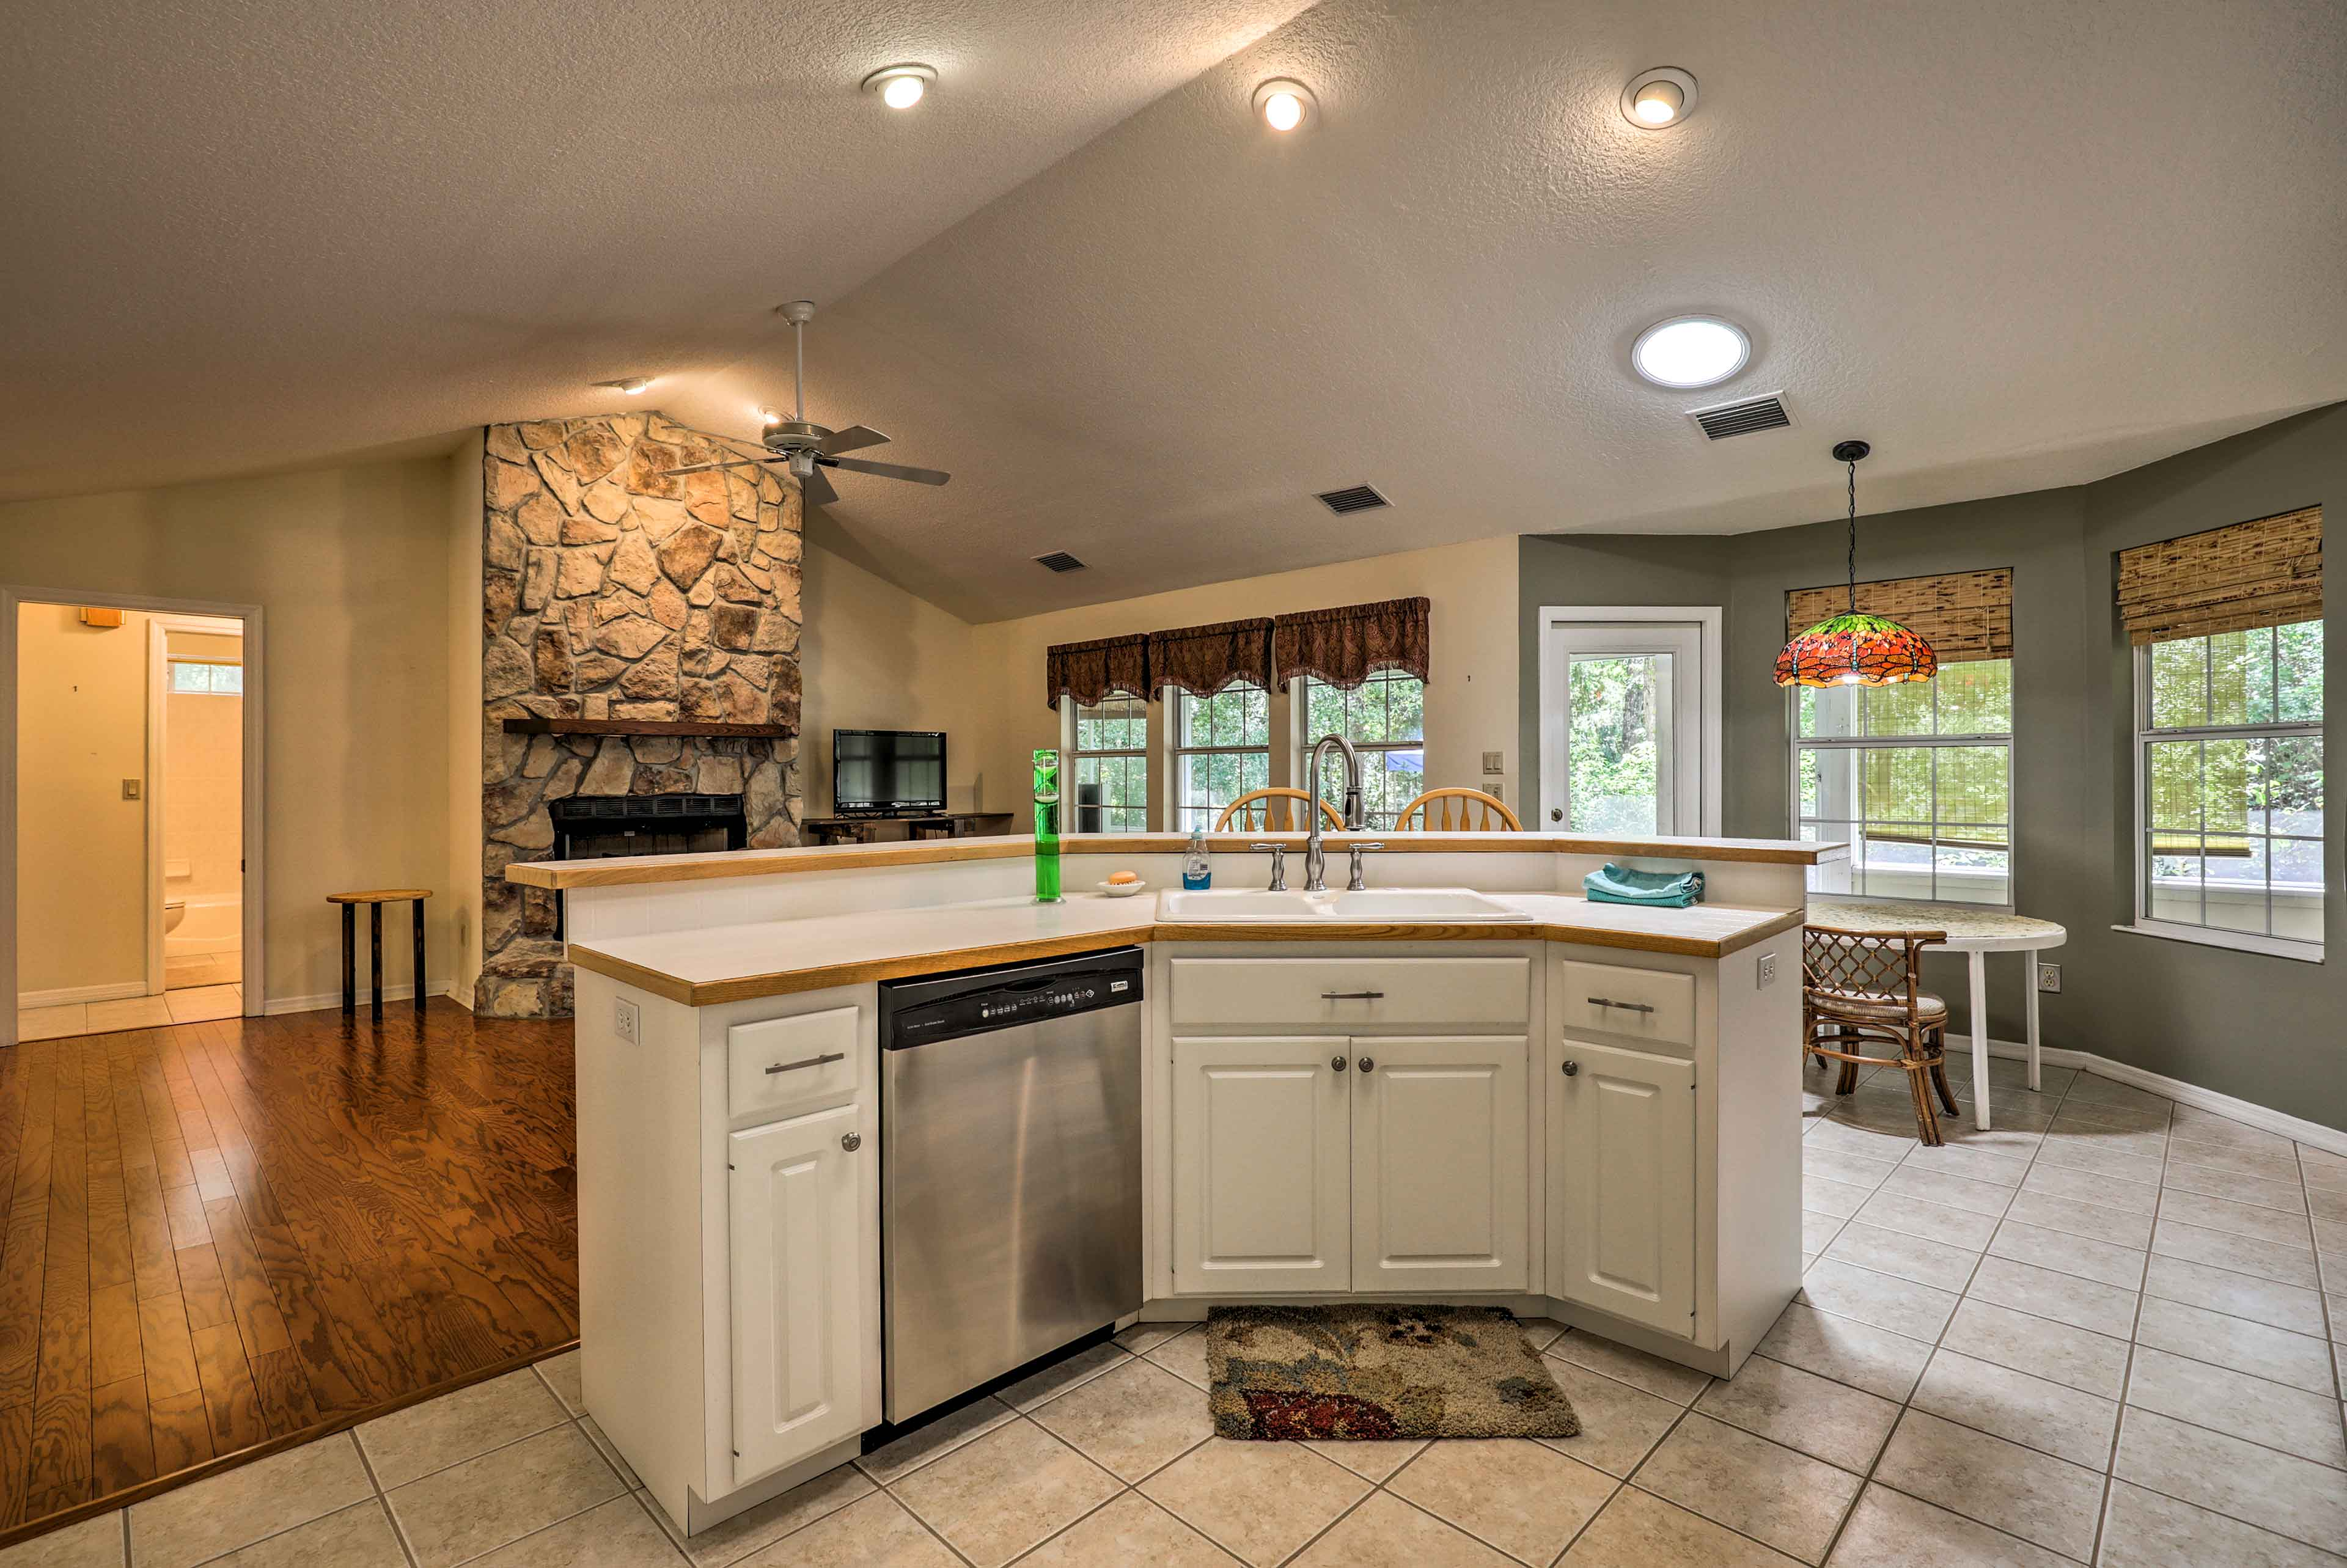 It's easy to chat with the chef while they cook with the open, spacious kitchen.